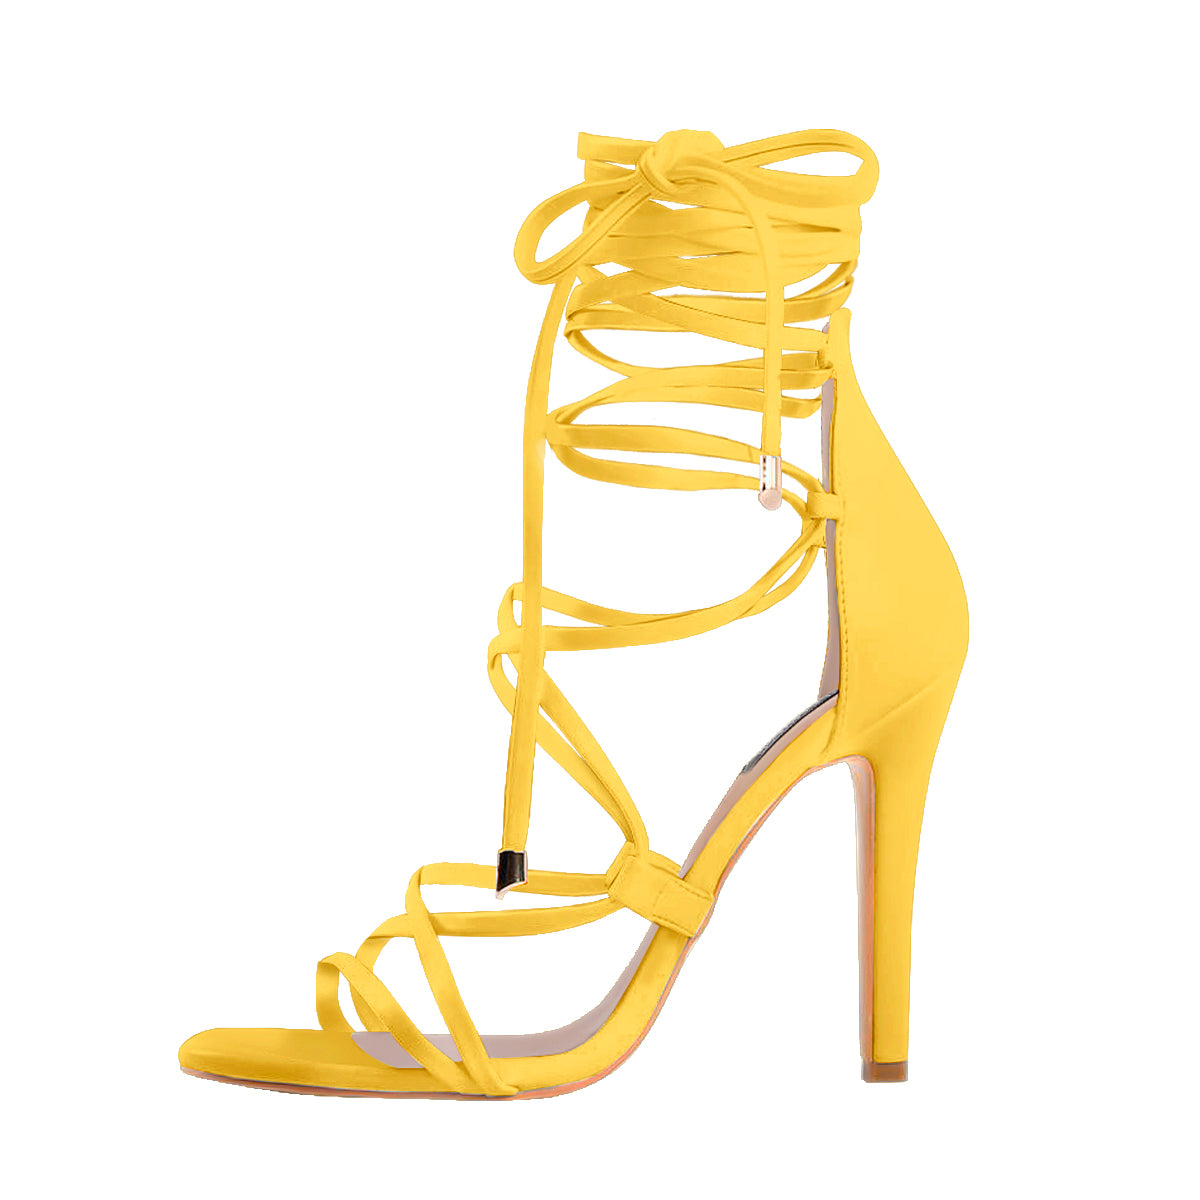 Lace up High Heels Yellow Gladiator Stiletto Sandals